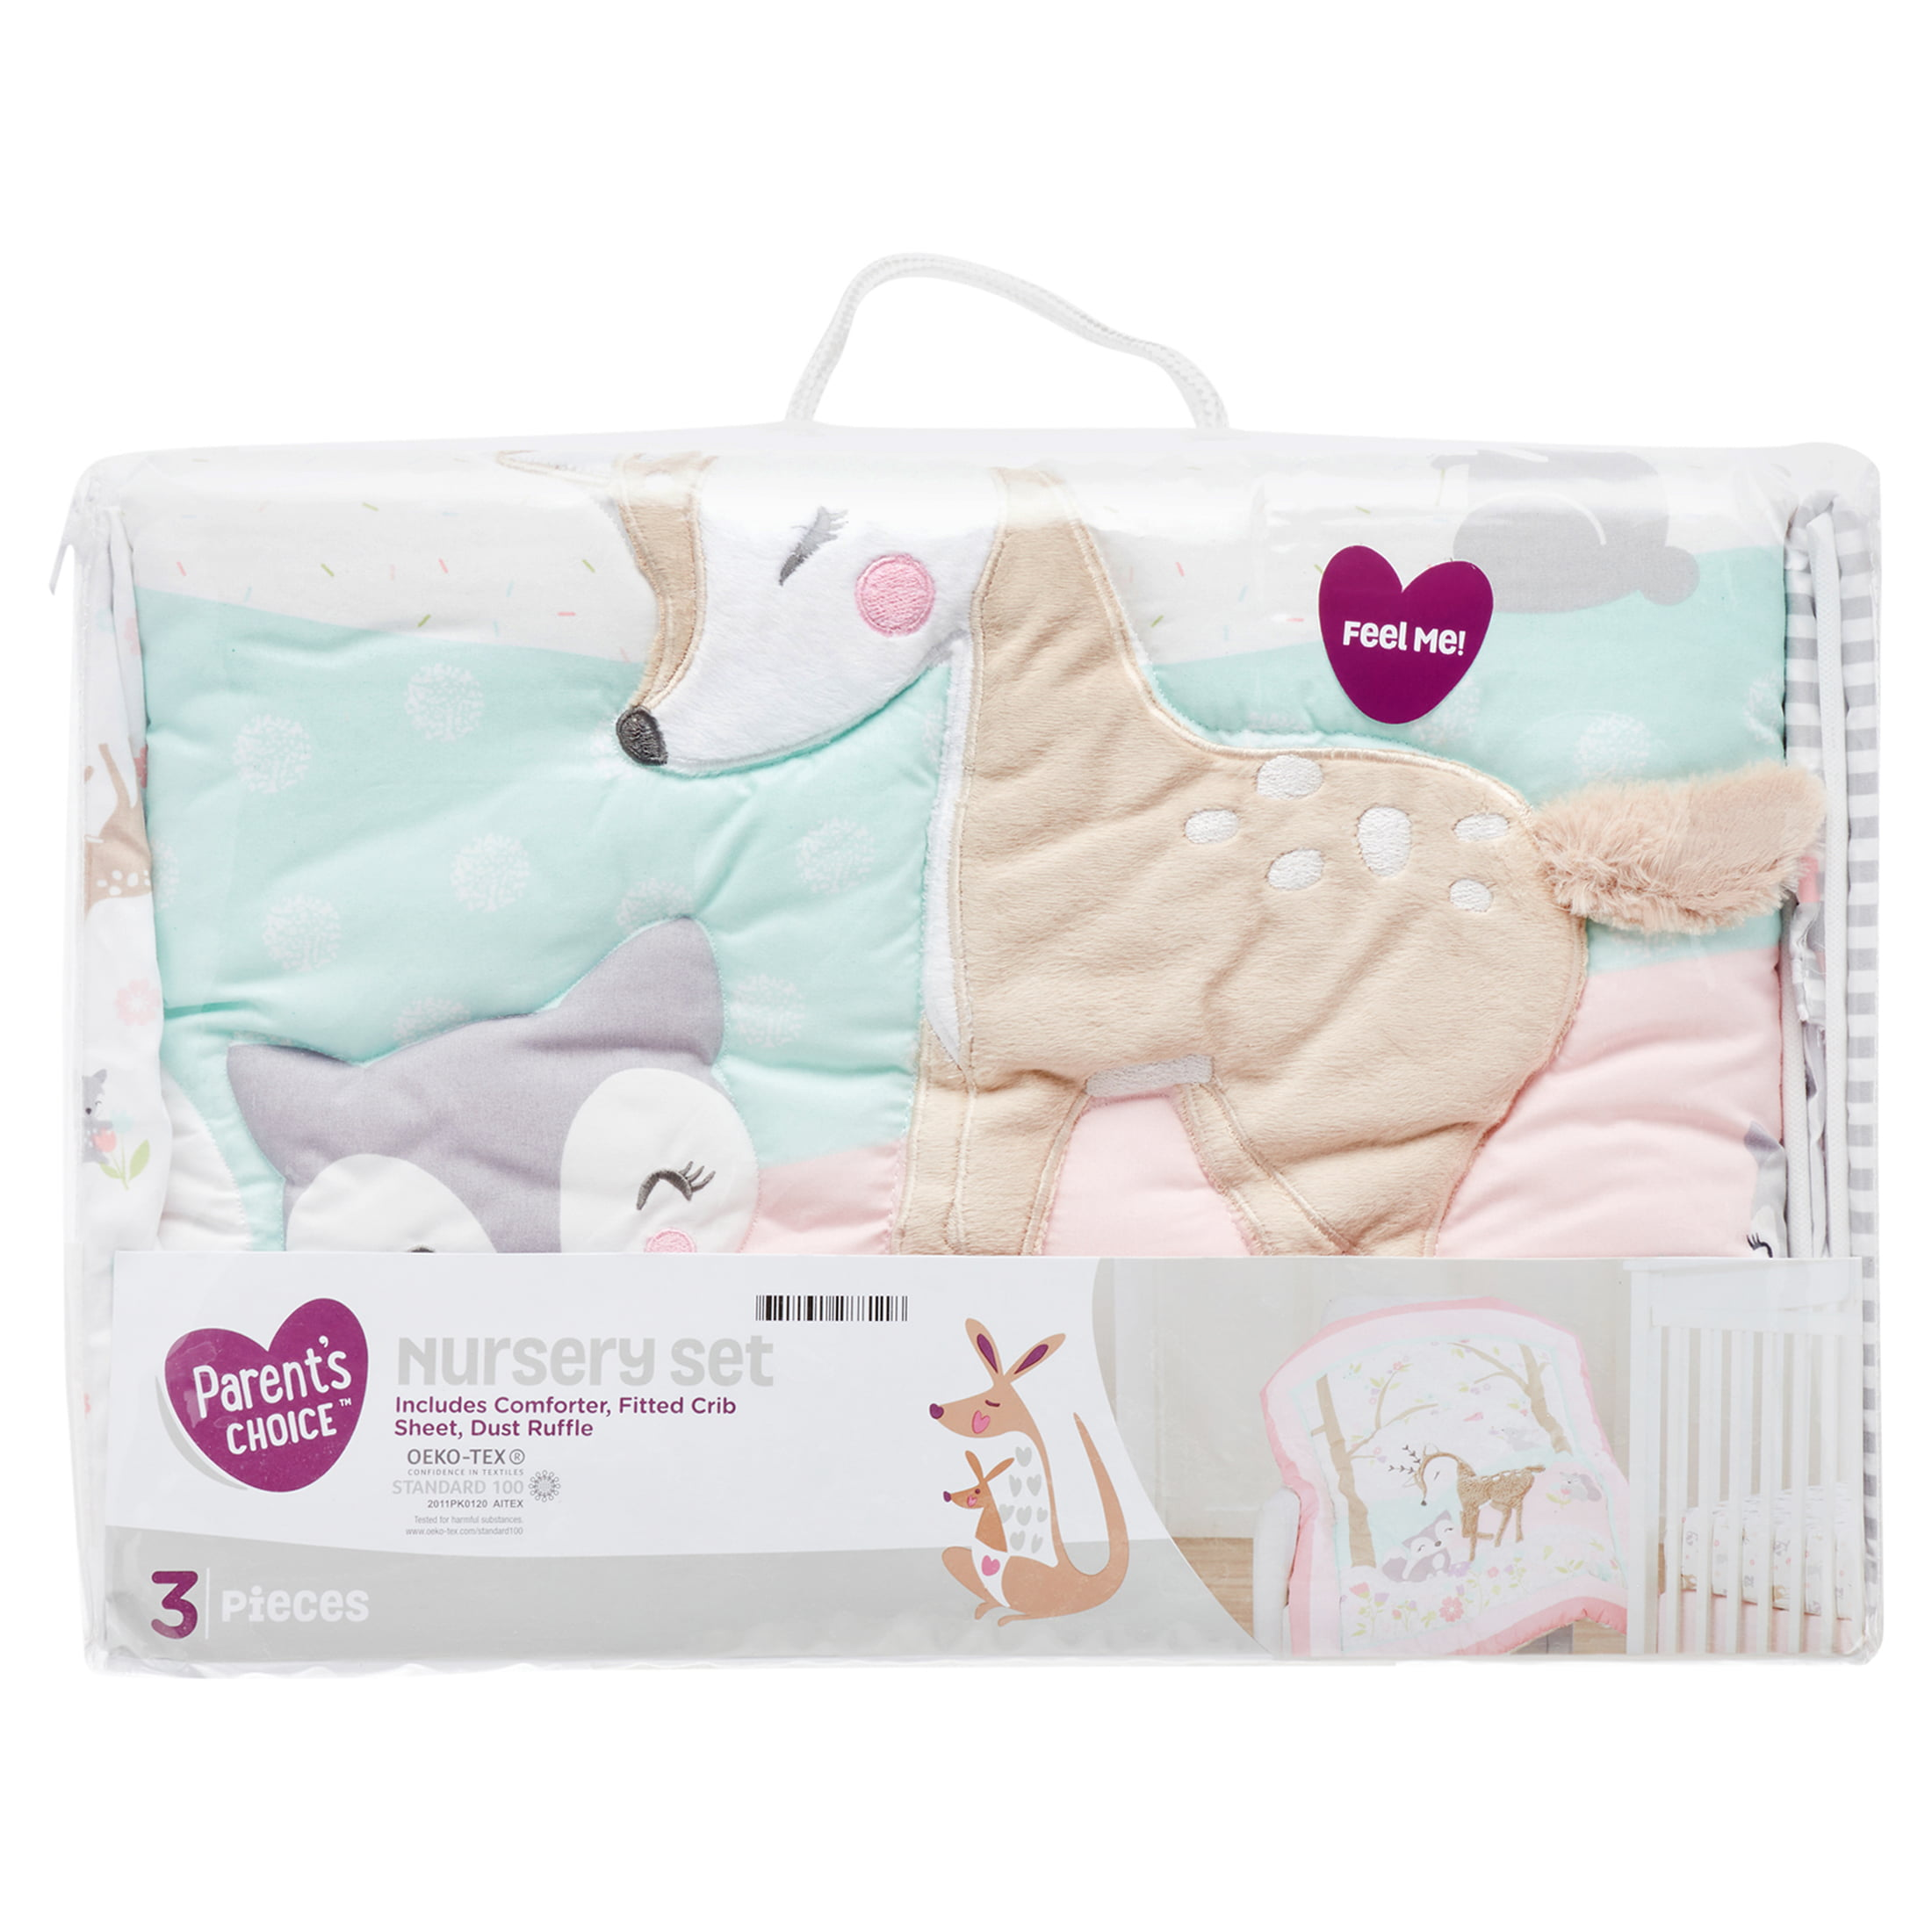 Fitted Sheet and Dust Ruffle Parents Choice Twinkle Twinkle Little Star Baby Nursery Set Includes Comforter